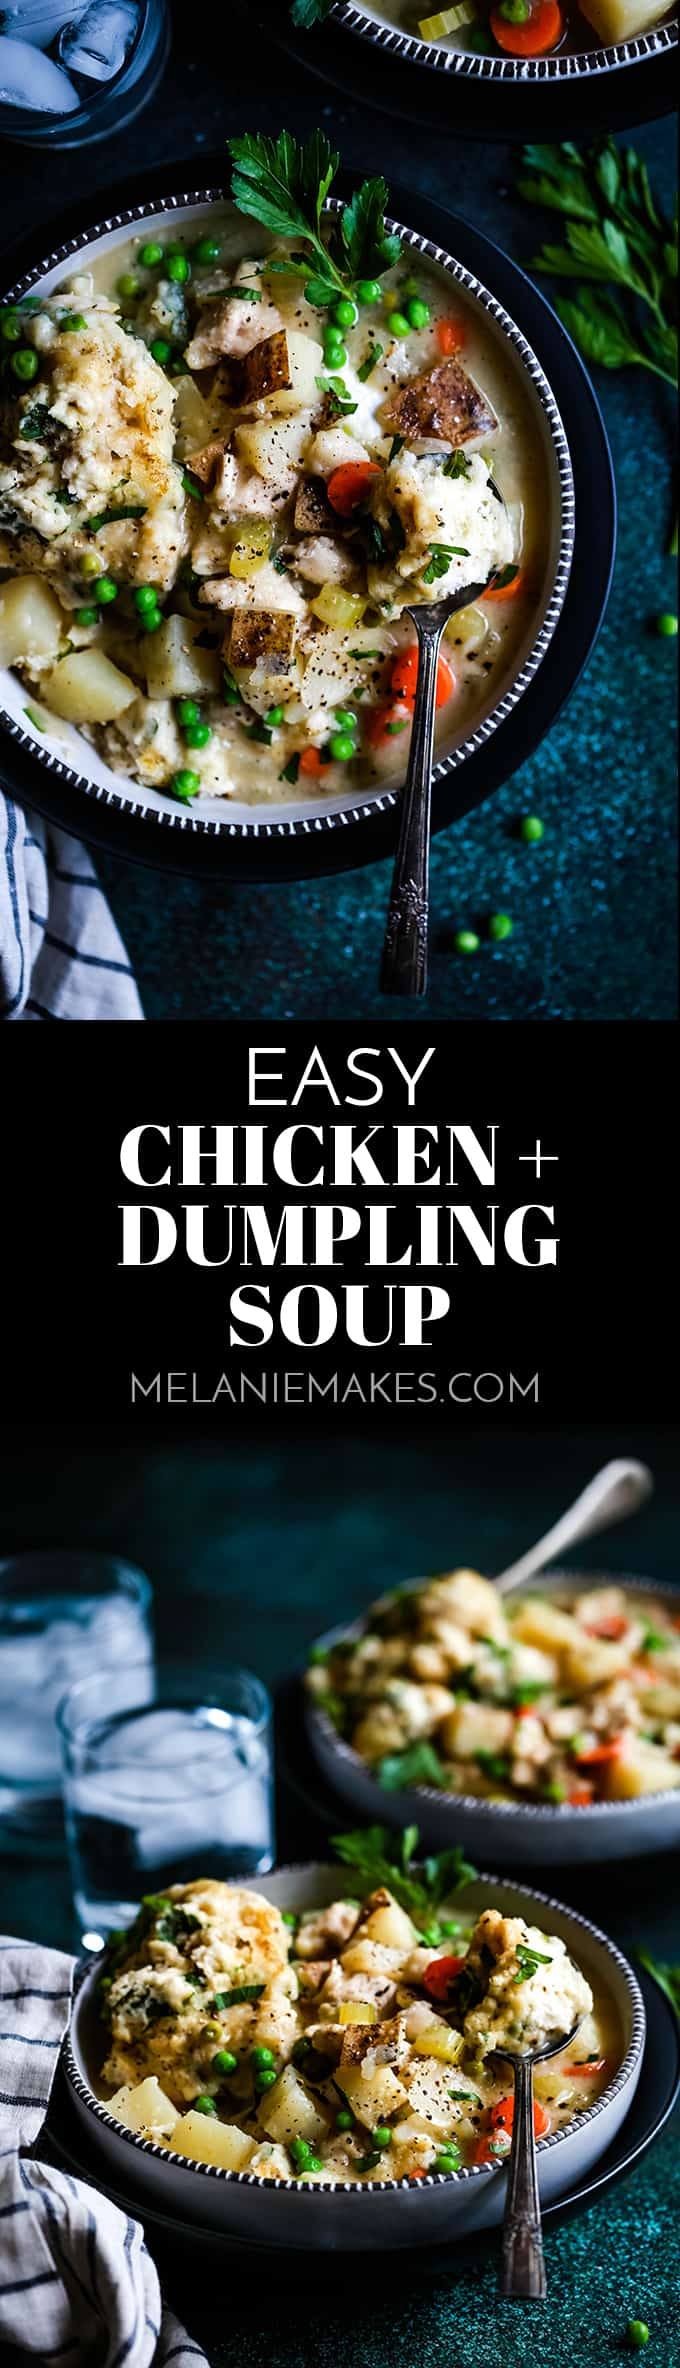 Nothing beats the chill of a winter's day like this Easy Chicken and Dumpling Soup. The shortcut parsley studded dumplings definitely steal the show! #soup #chicken #dumplings #easyrecipe #potatoes #carrots #souprecipes